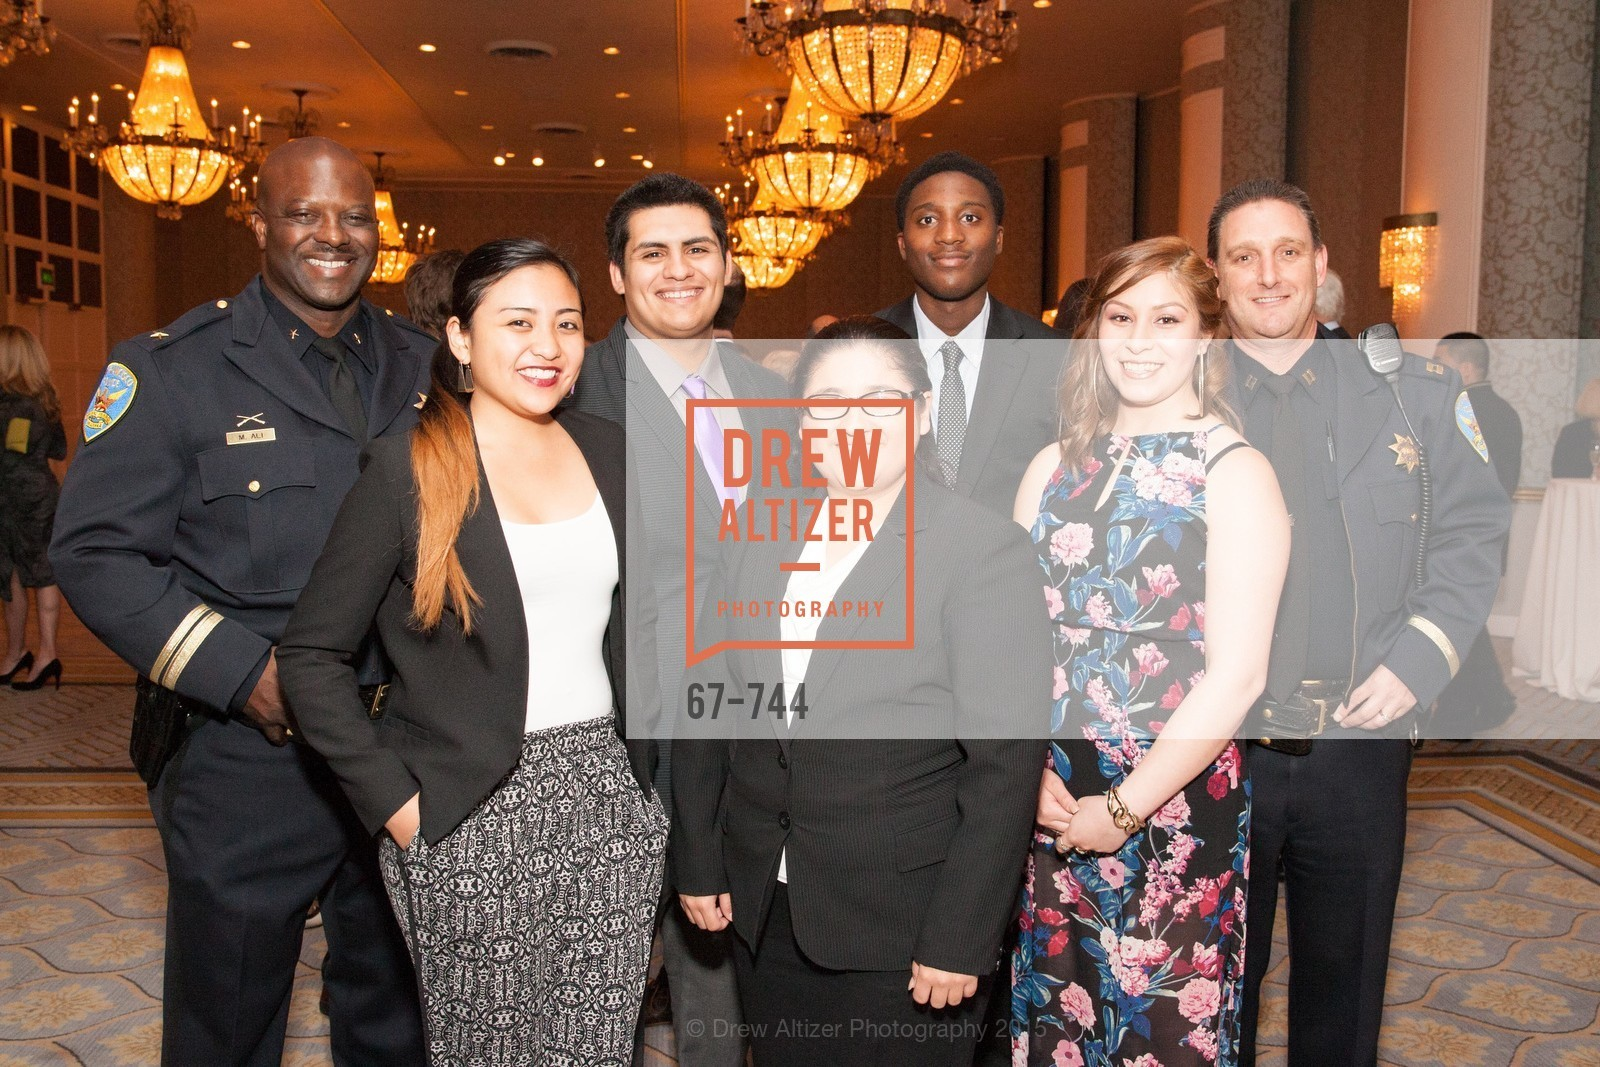 Mikail Ali, Aeris Velasco, Joe Armijo, Carmen Sosa, Rob O'Sullivan, Khari Brown, Yossef Azim, Greg McEachern, Celebration of Launch of SHYP in Los Angeles, US, May 20th, 2015,Drew Altizer, Drew Altizer Photography, full-service agency, private events, San Francisco photographer, photographer california